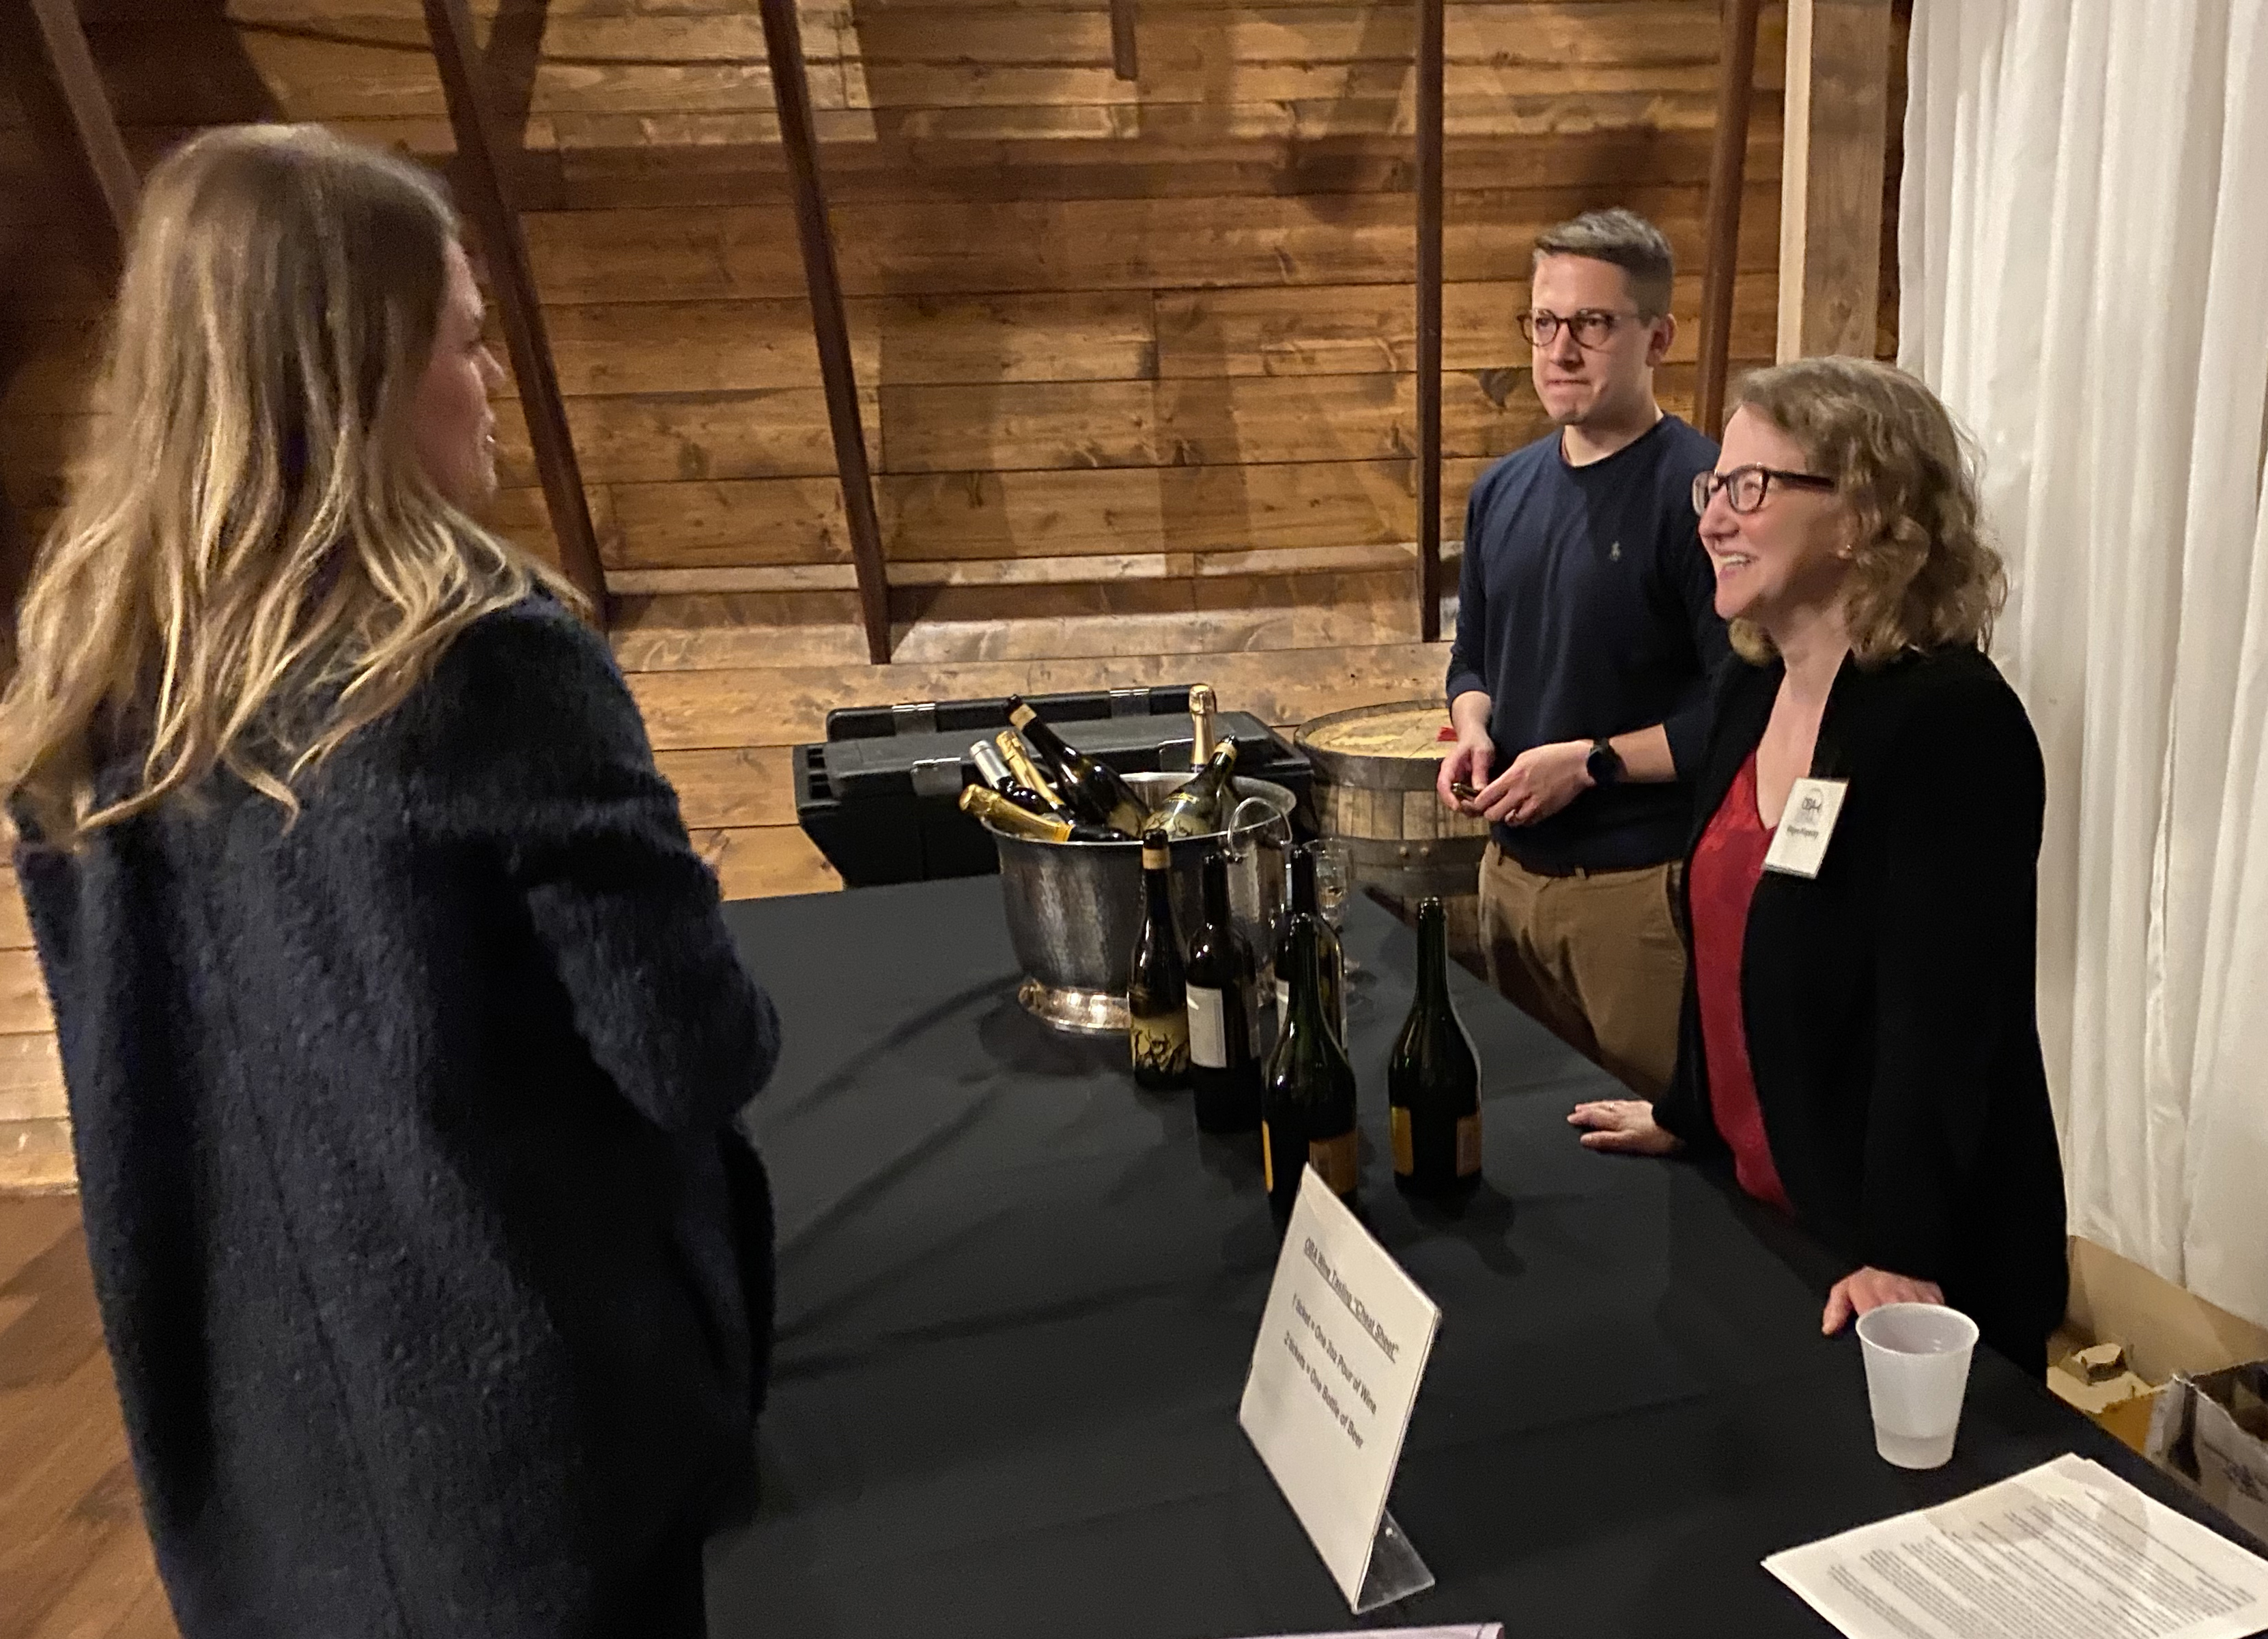 Volunteers from The Daily Record and Omaha Legal Professionals Association assisted the Omaha Bar Association with the preparations and operation of the 2020 wine tasting. (Scott Stewart/Daily Record)